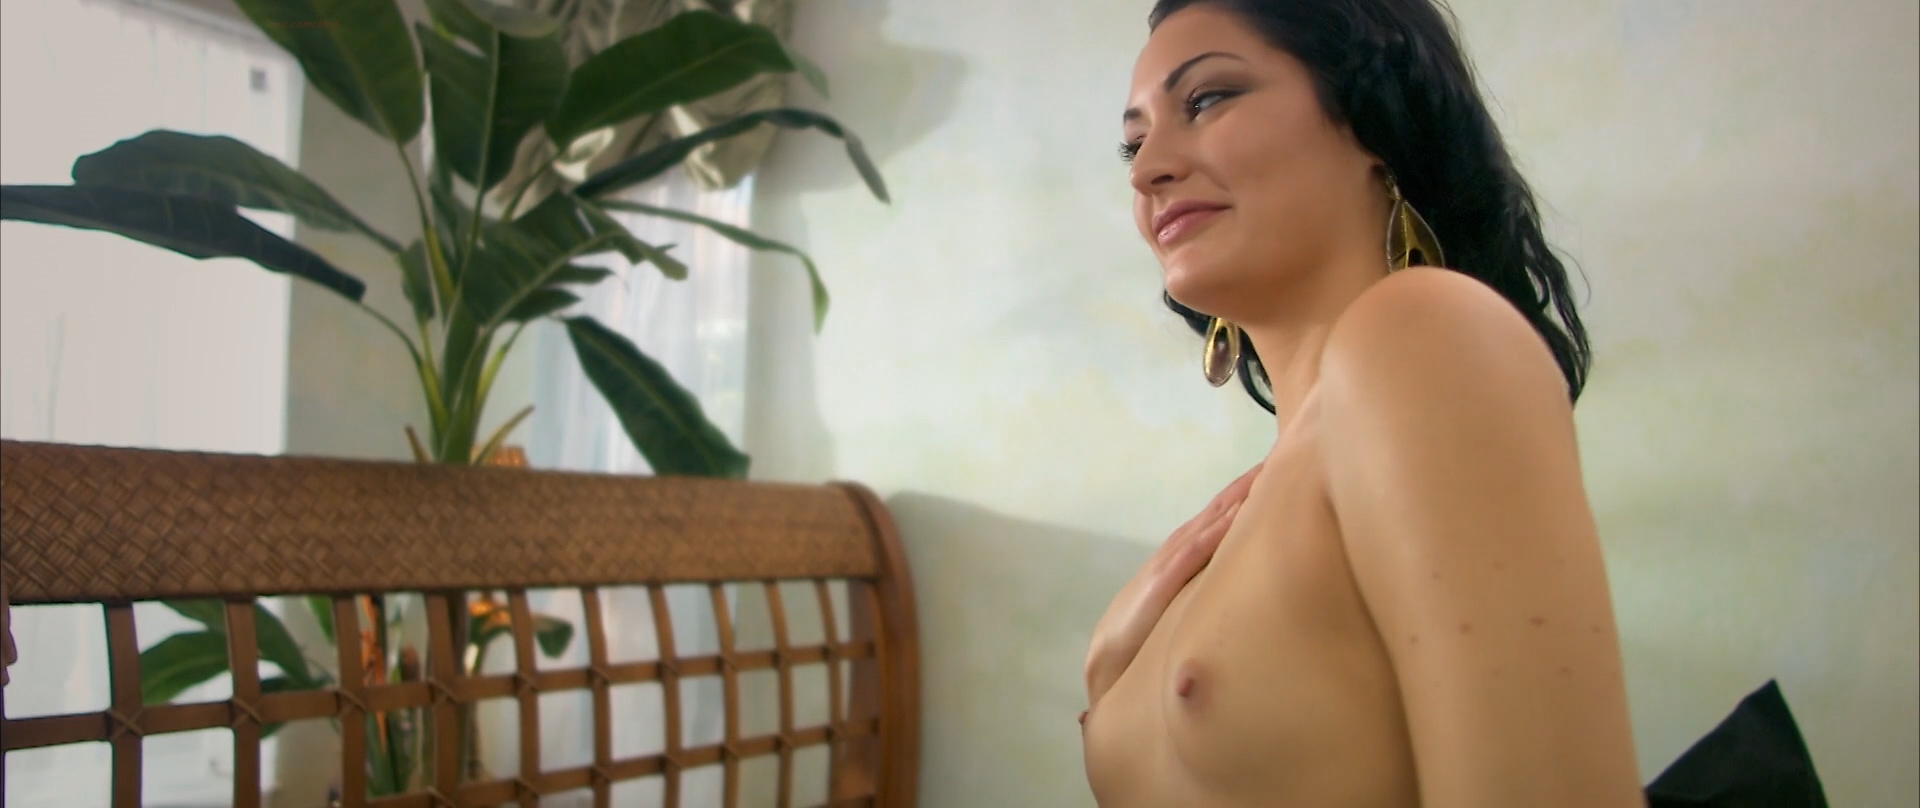 Krystyna Ahlers nude , Jennifer Worthington nude full frontal and others all nude - Girls Gone Dead (2012) hd1080p (4)